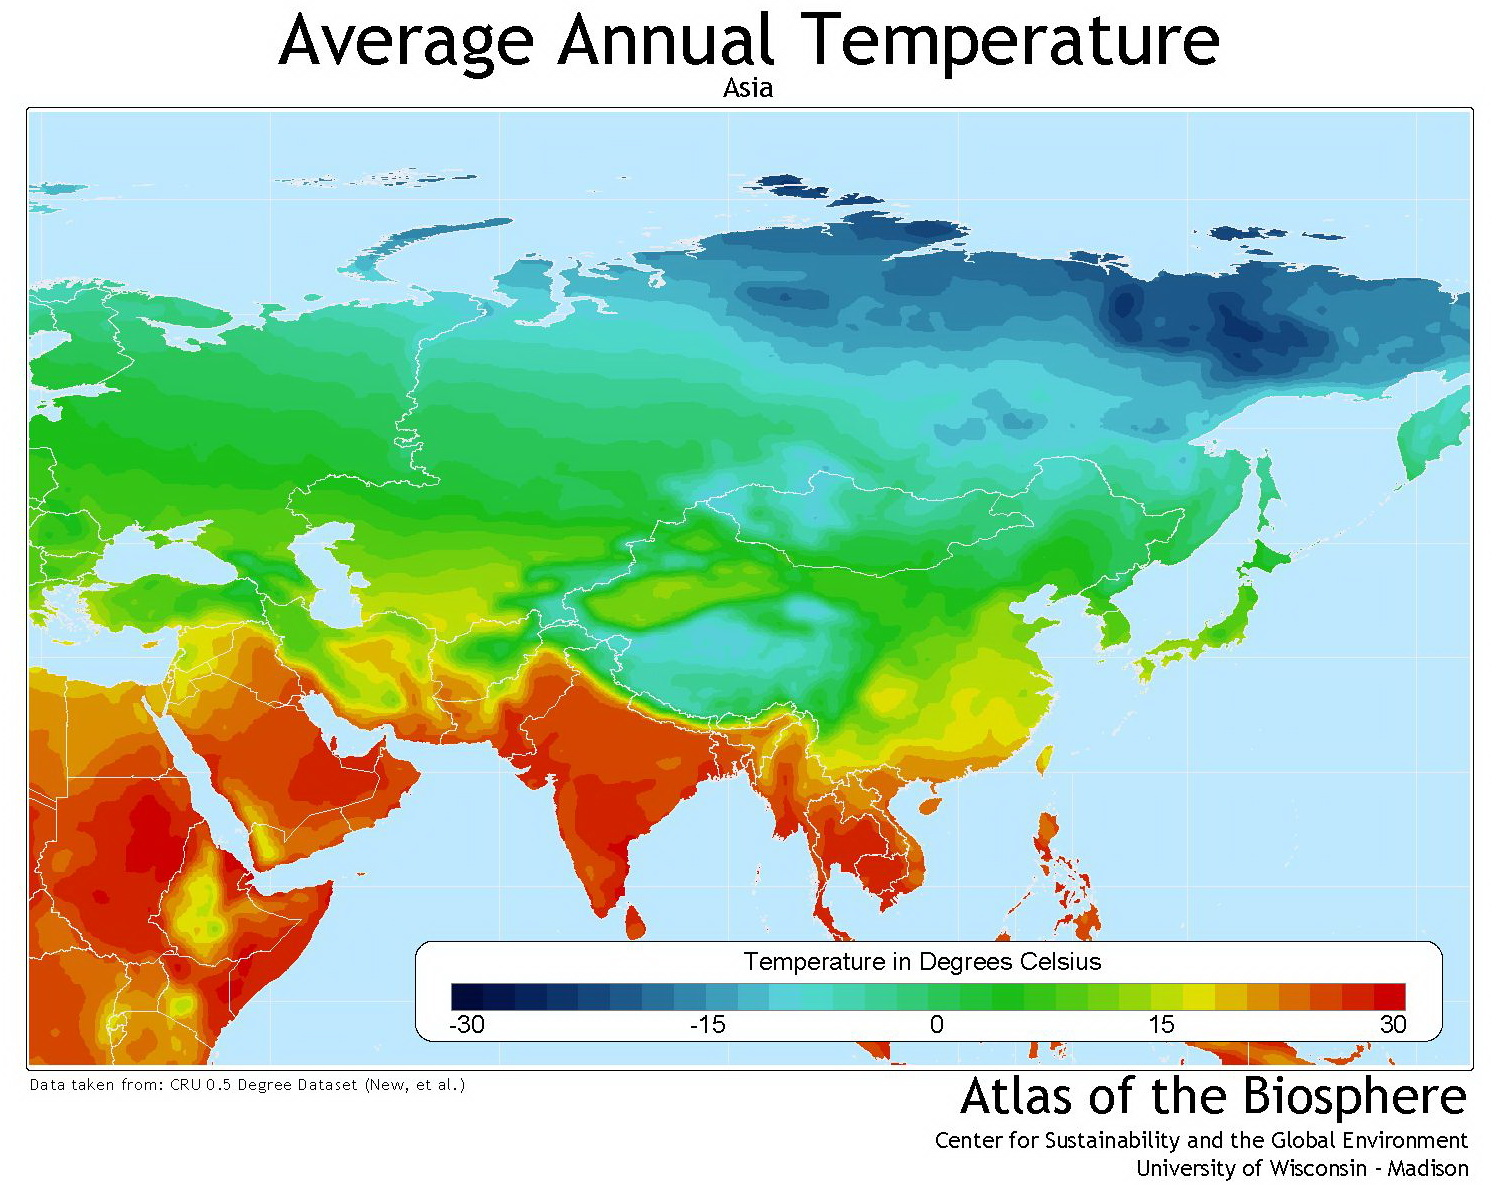 Asia average annual temperature